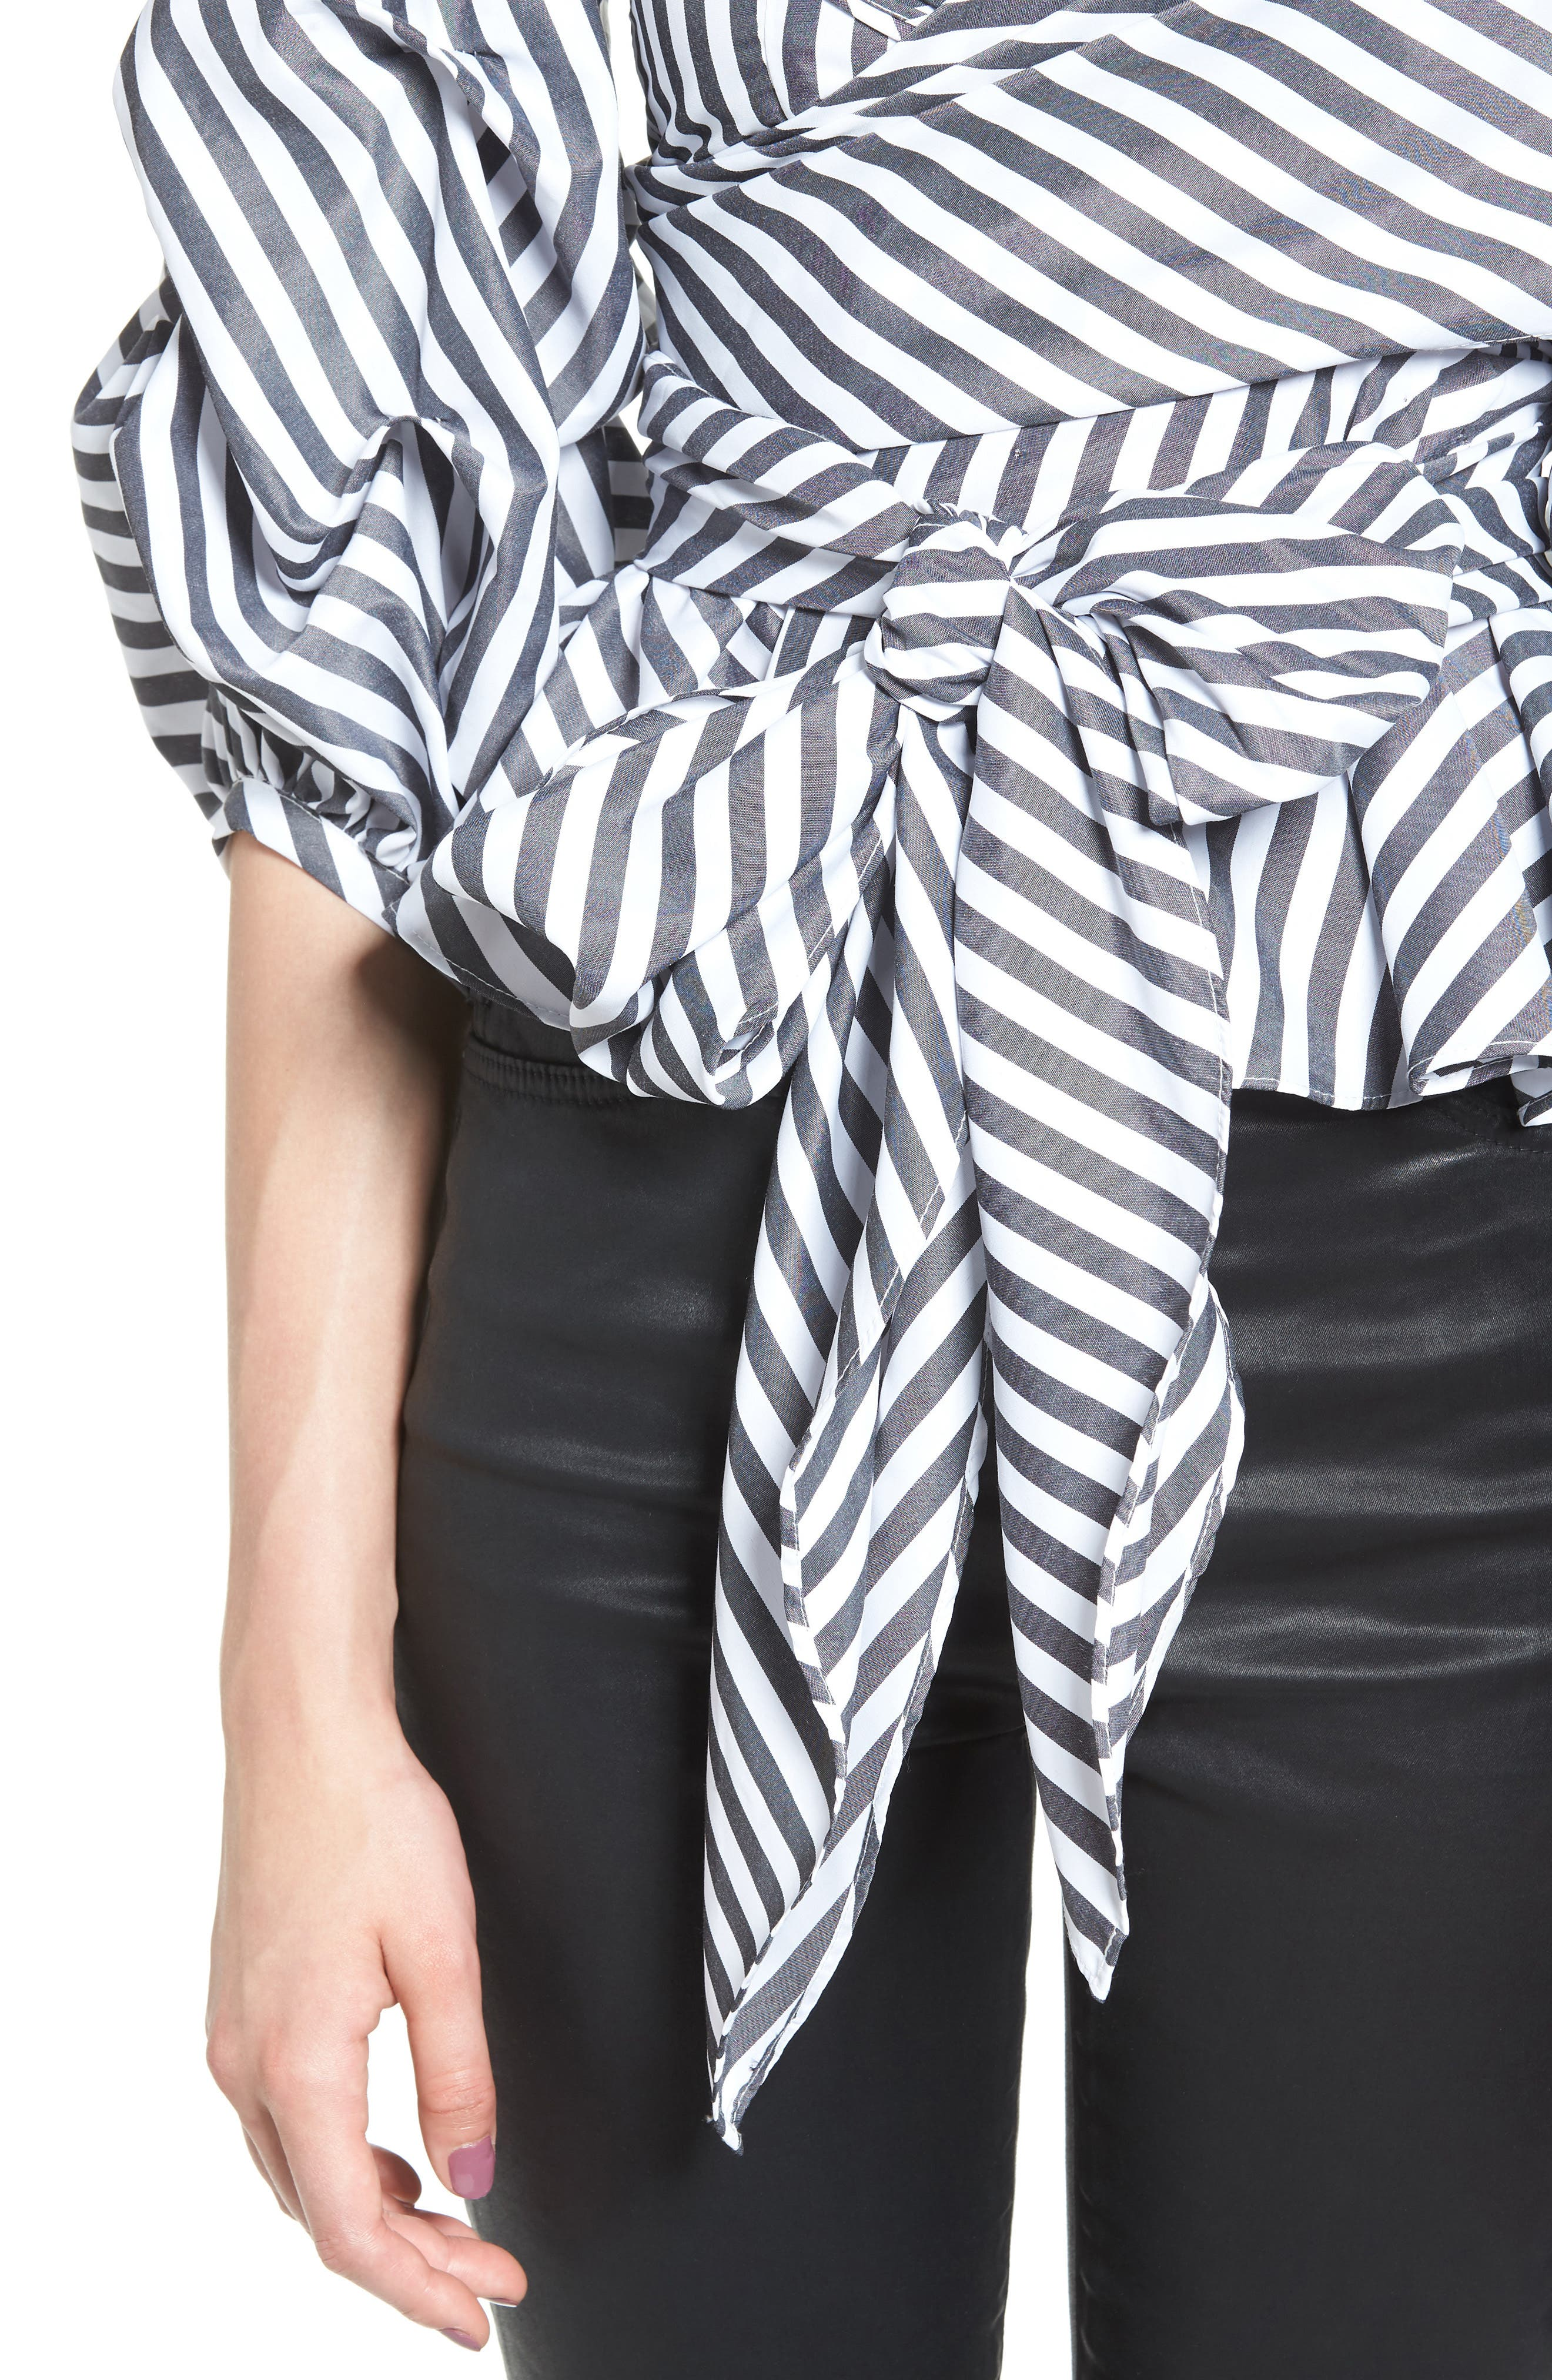 The Lovers Lane Top,                             Alternate thumbnail 4, color,                             Striped Charcoal